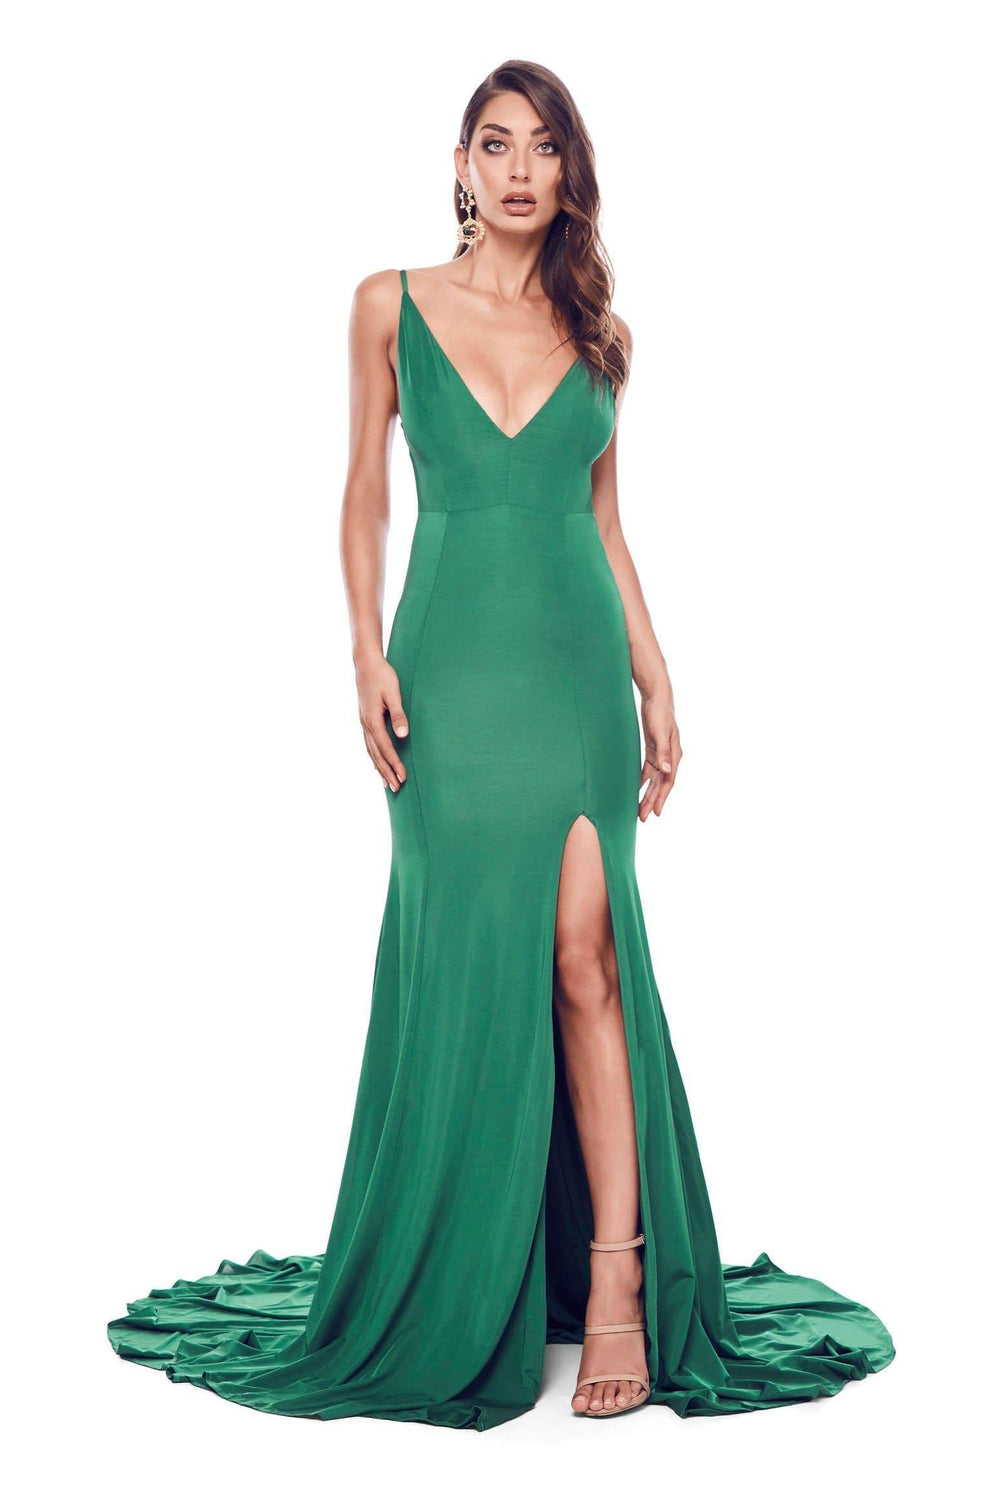 Alyona - Emerald Jersey Gown with Plunge Neck, Open Back & Side Slit